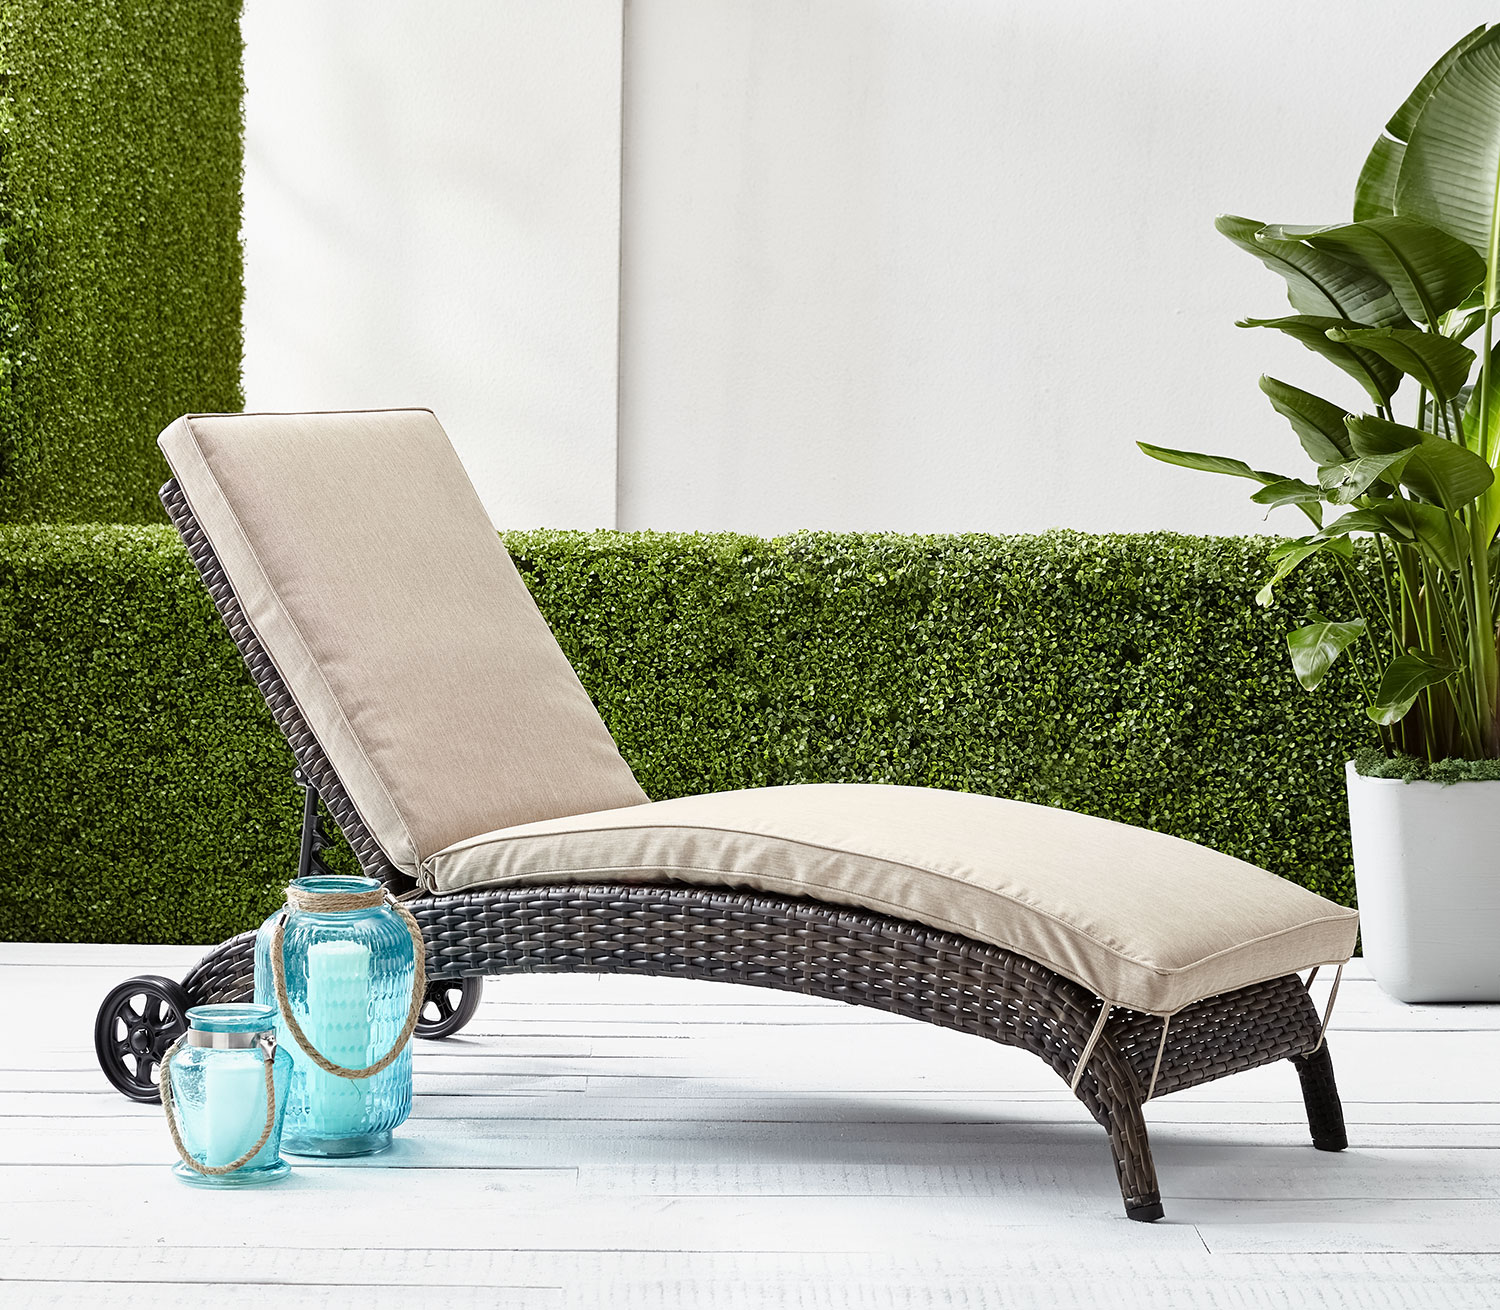 Outdoor Furniture - Appia Chaise Lounge - Beige